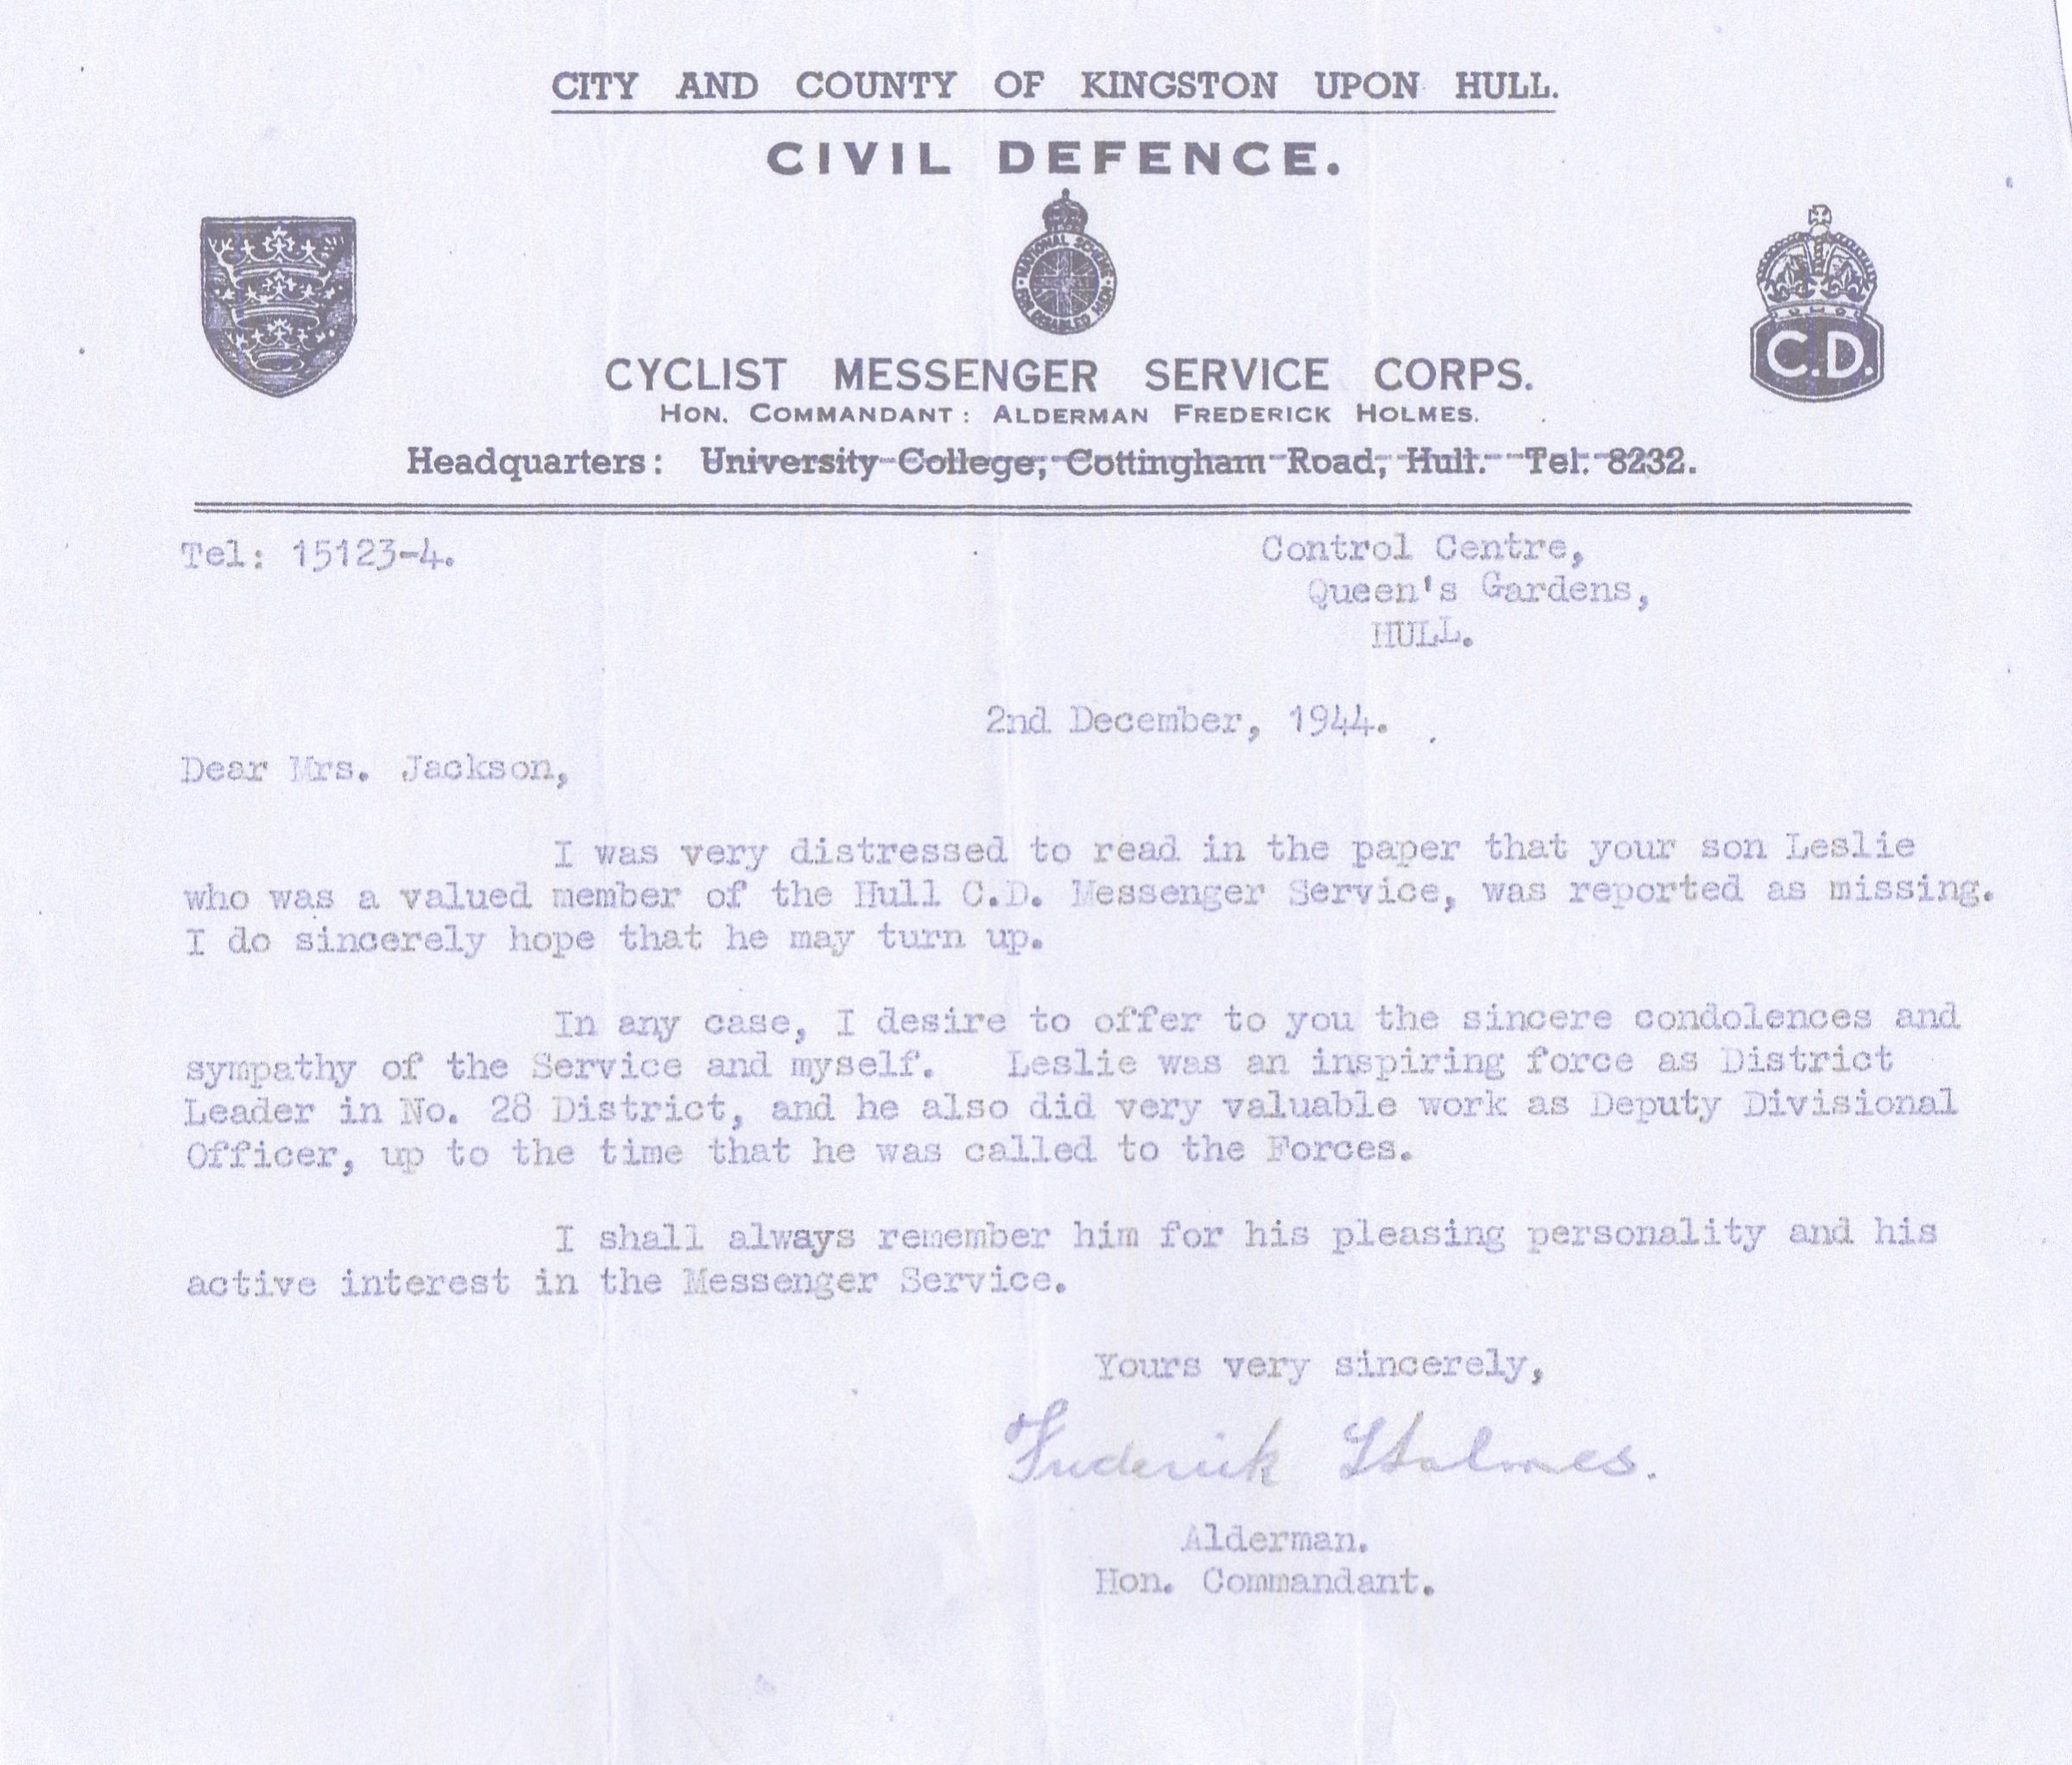 Civil Defence Letter 2nd December 1944